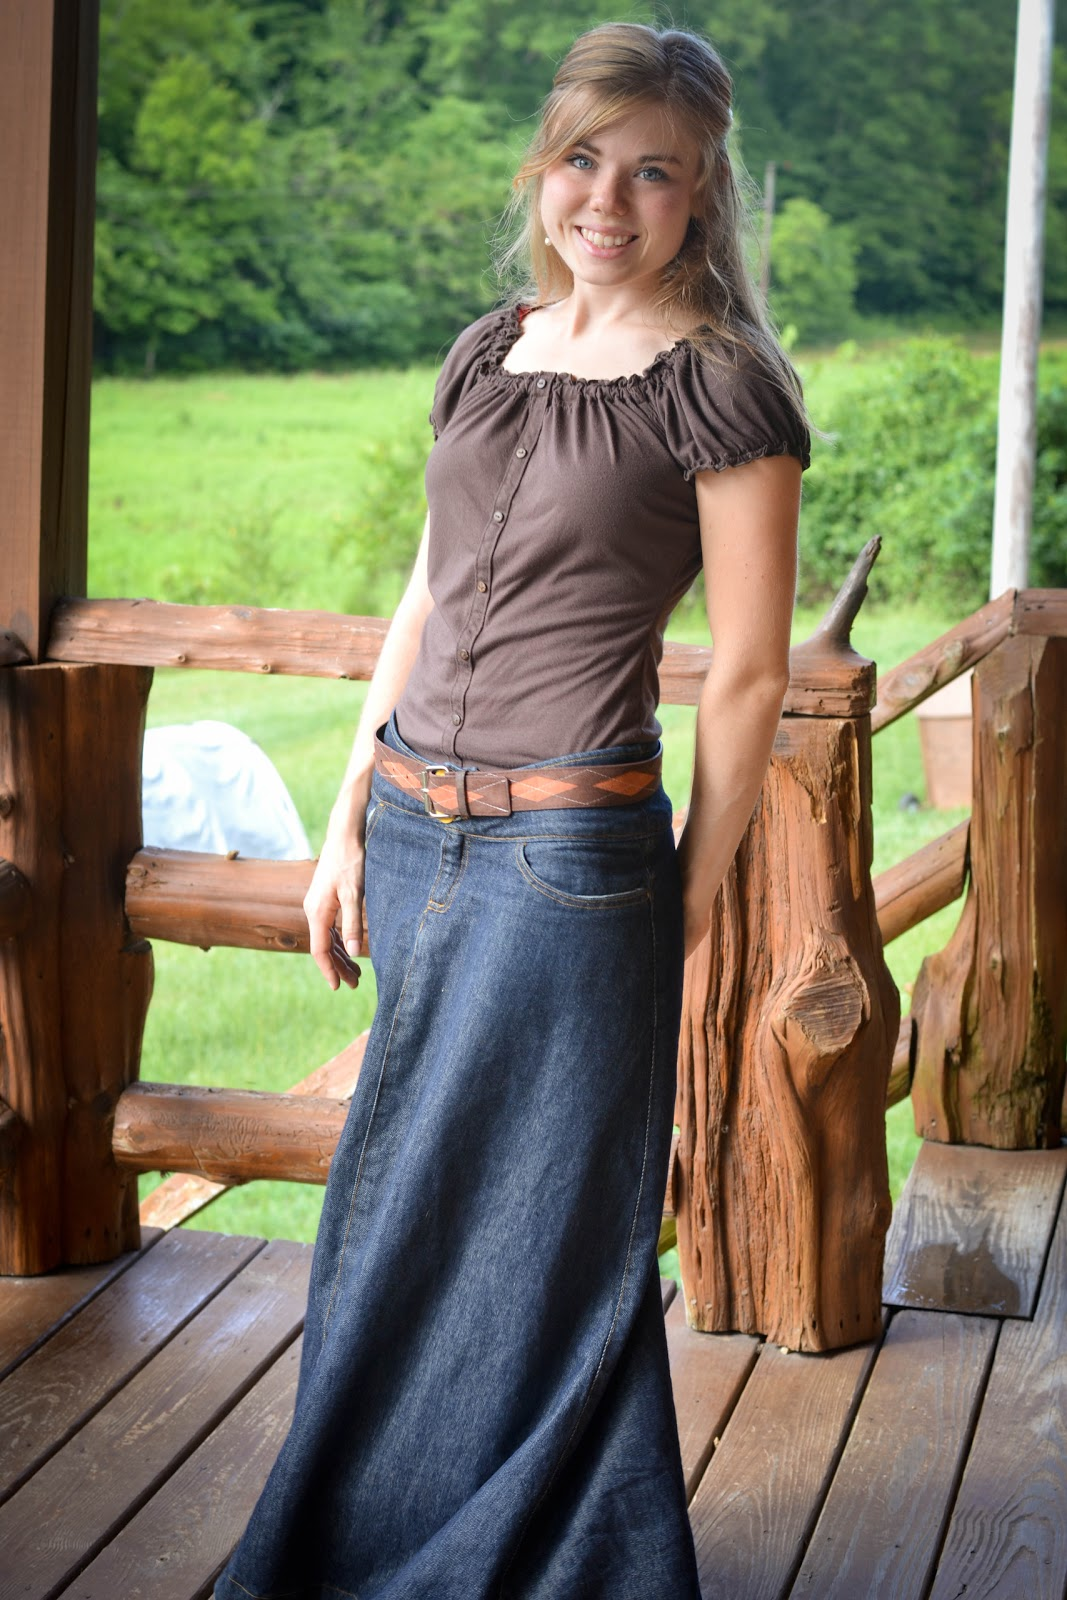 Awesome Vintage Women Pure Color Single Breasted A-line Denim Skirt | Alexnld.com